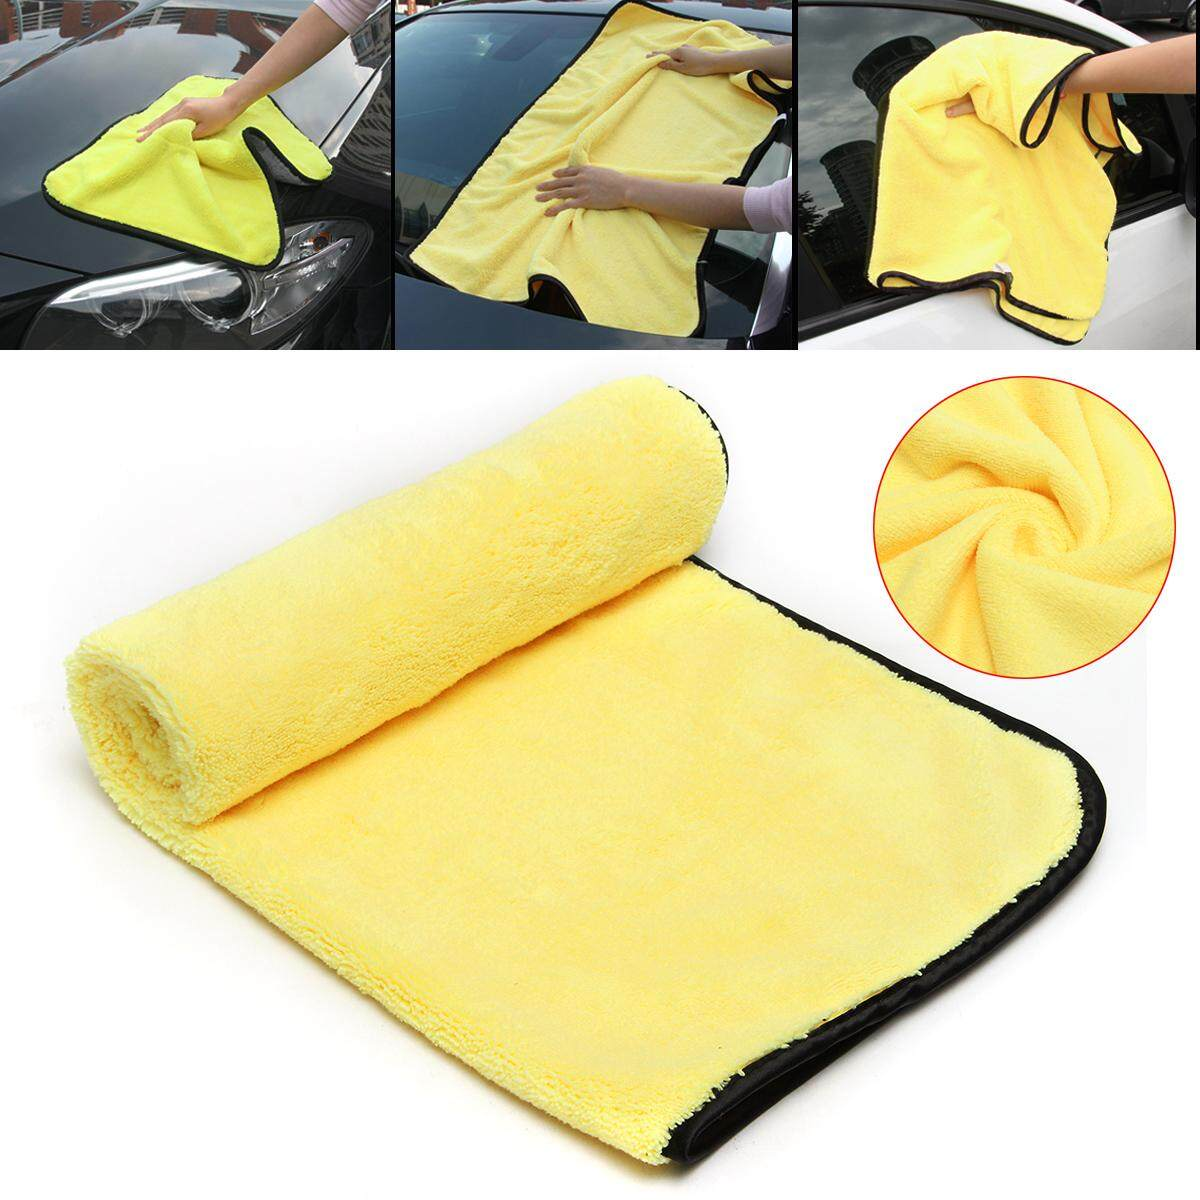 92cm x 56cm Large Size Microfiber Cleaning Cloths Car Auto Drying Wash Towels